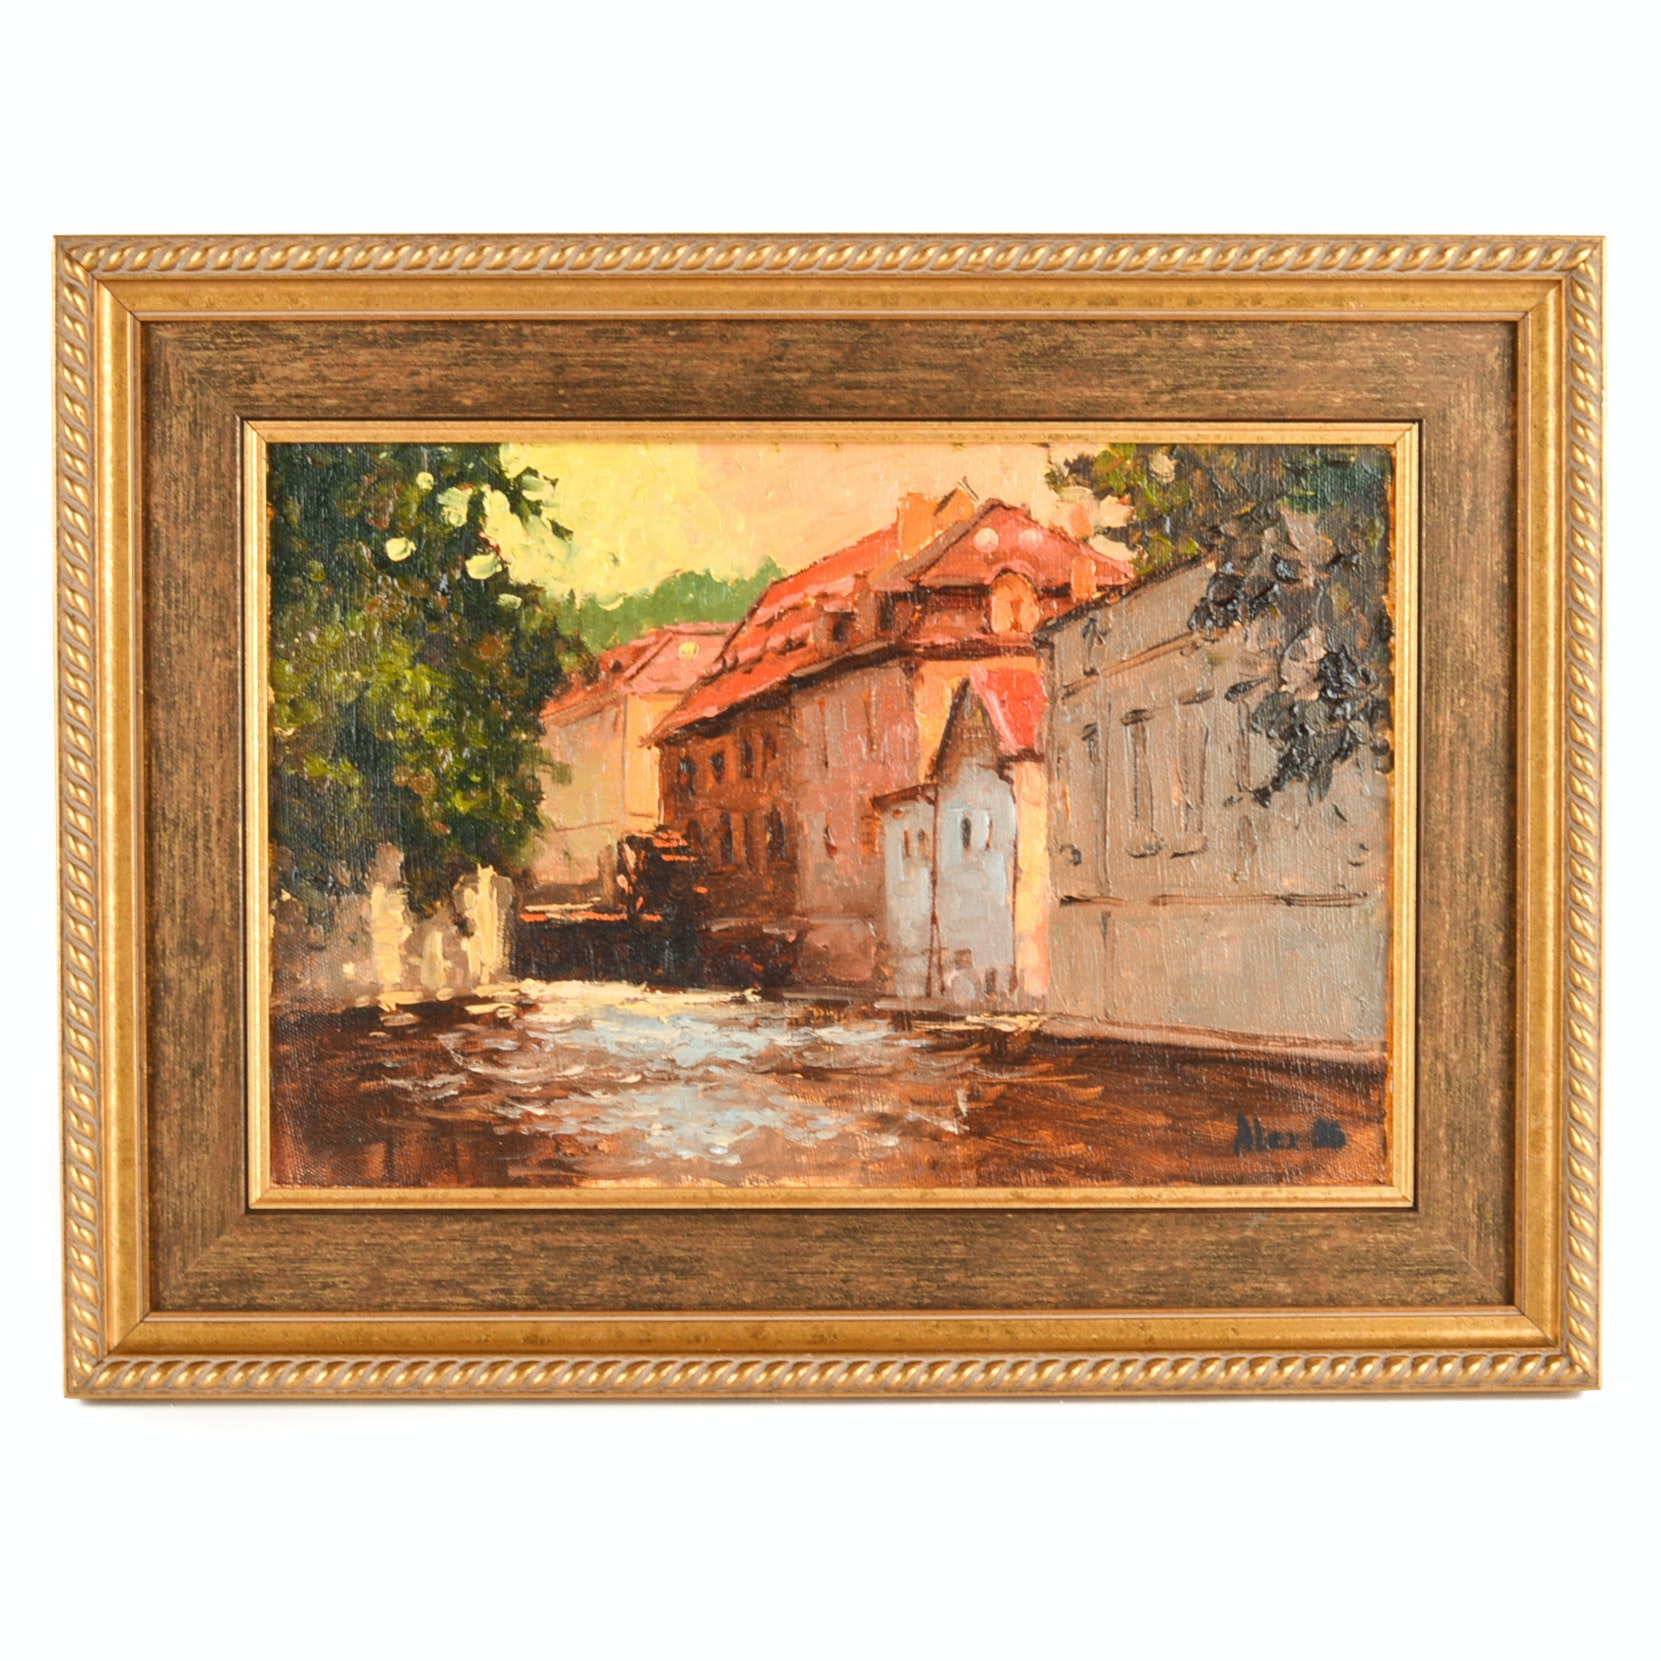 1936 Original Oil on Canvas Streetscape Painting